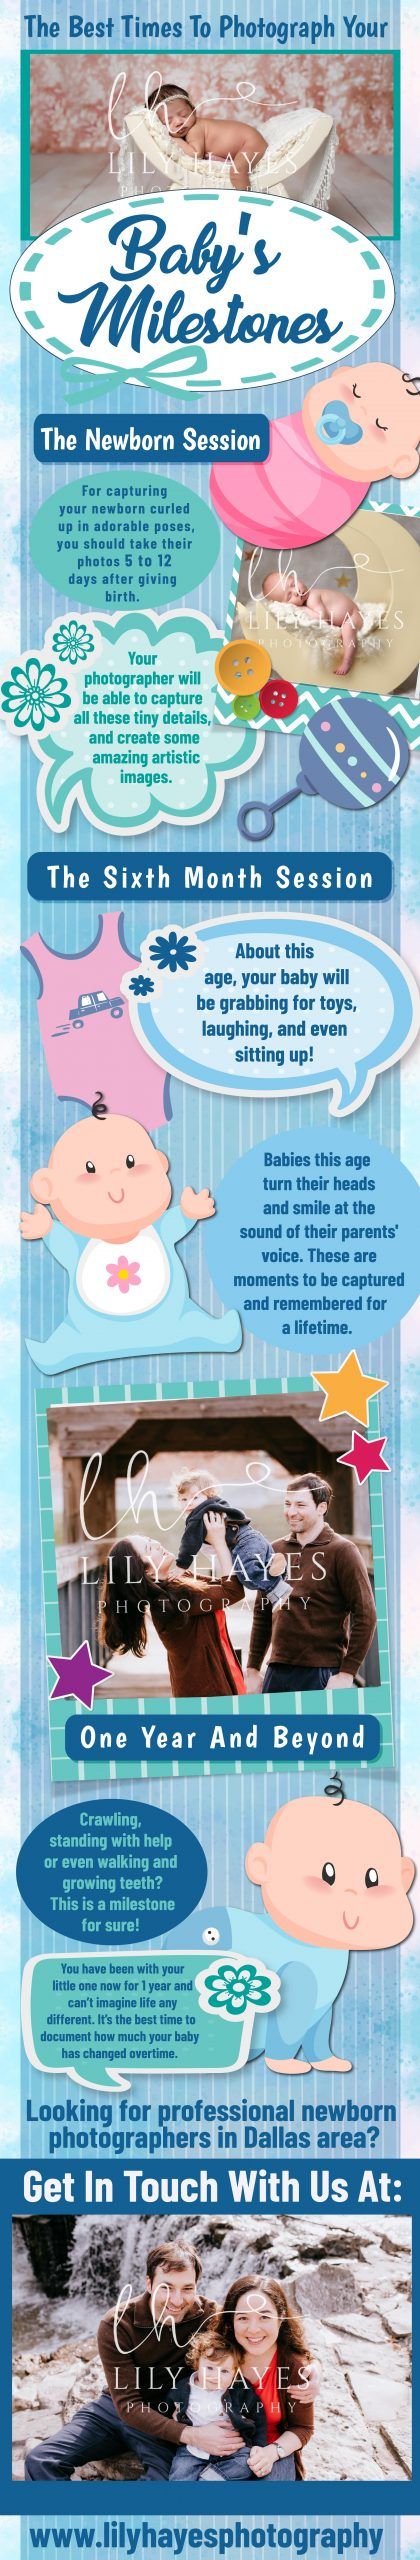 The-Best-Times-To-Photograph-Your-Baby's-Milestone-min